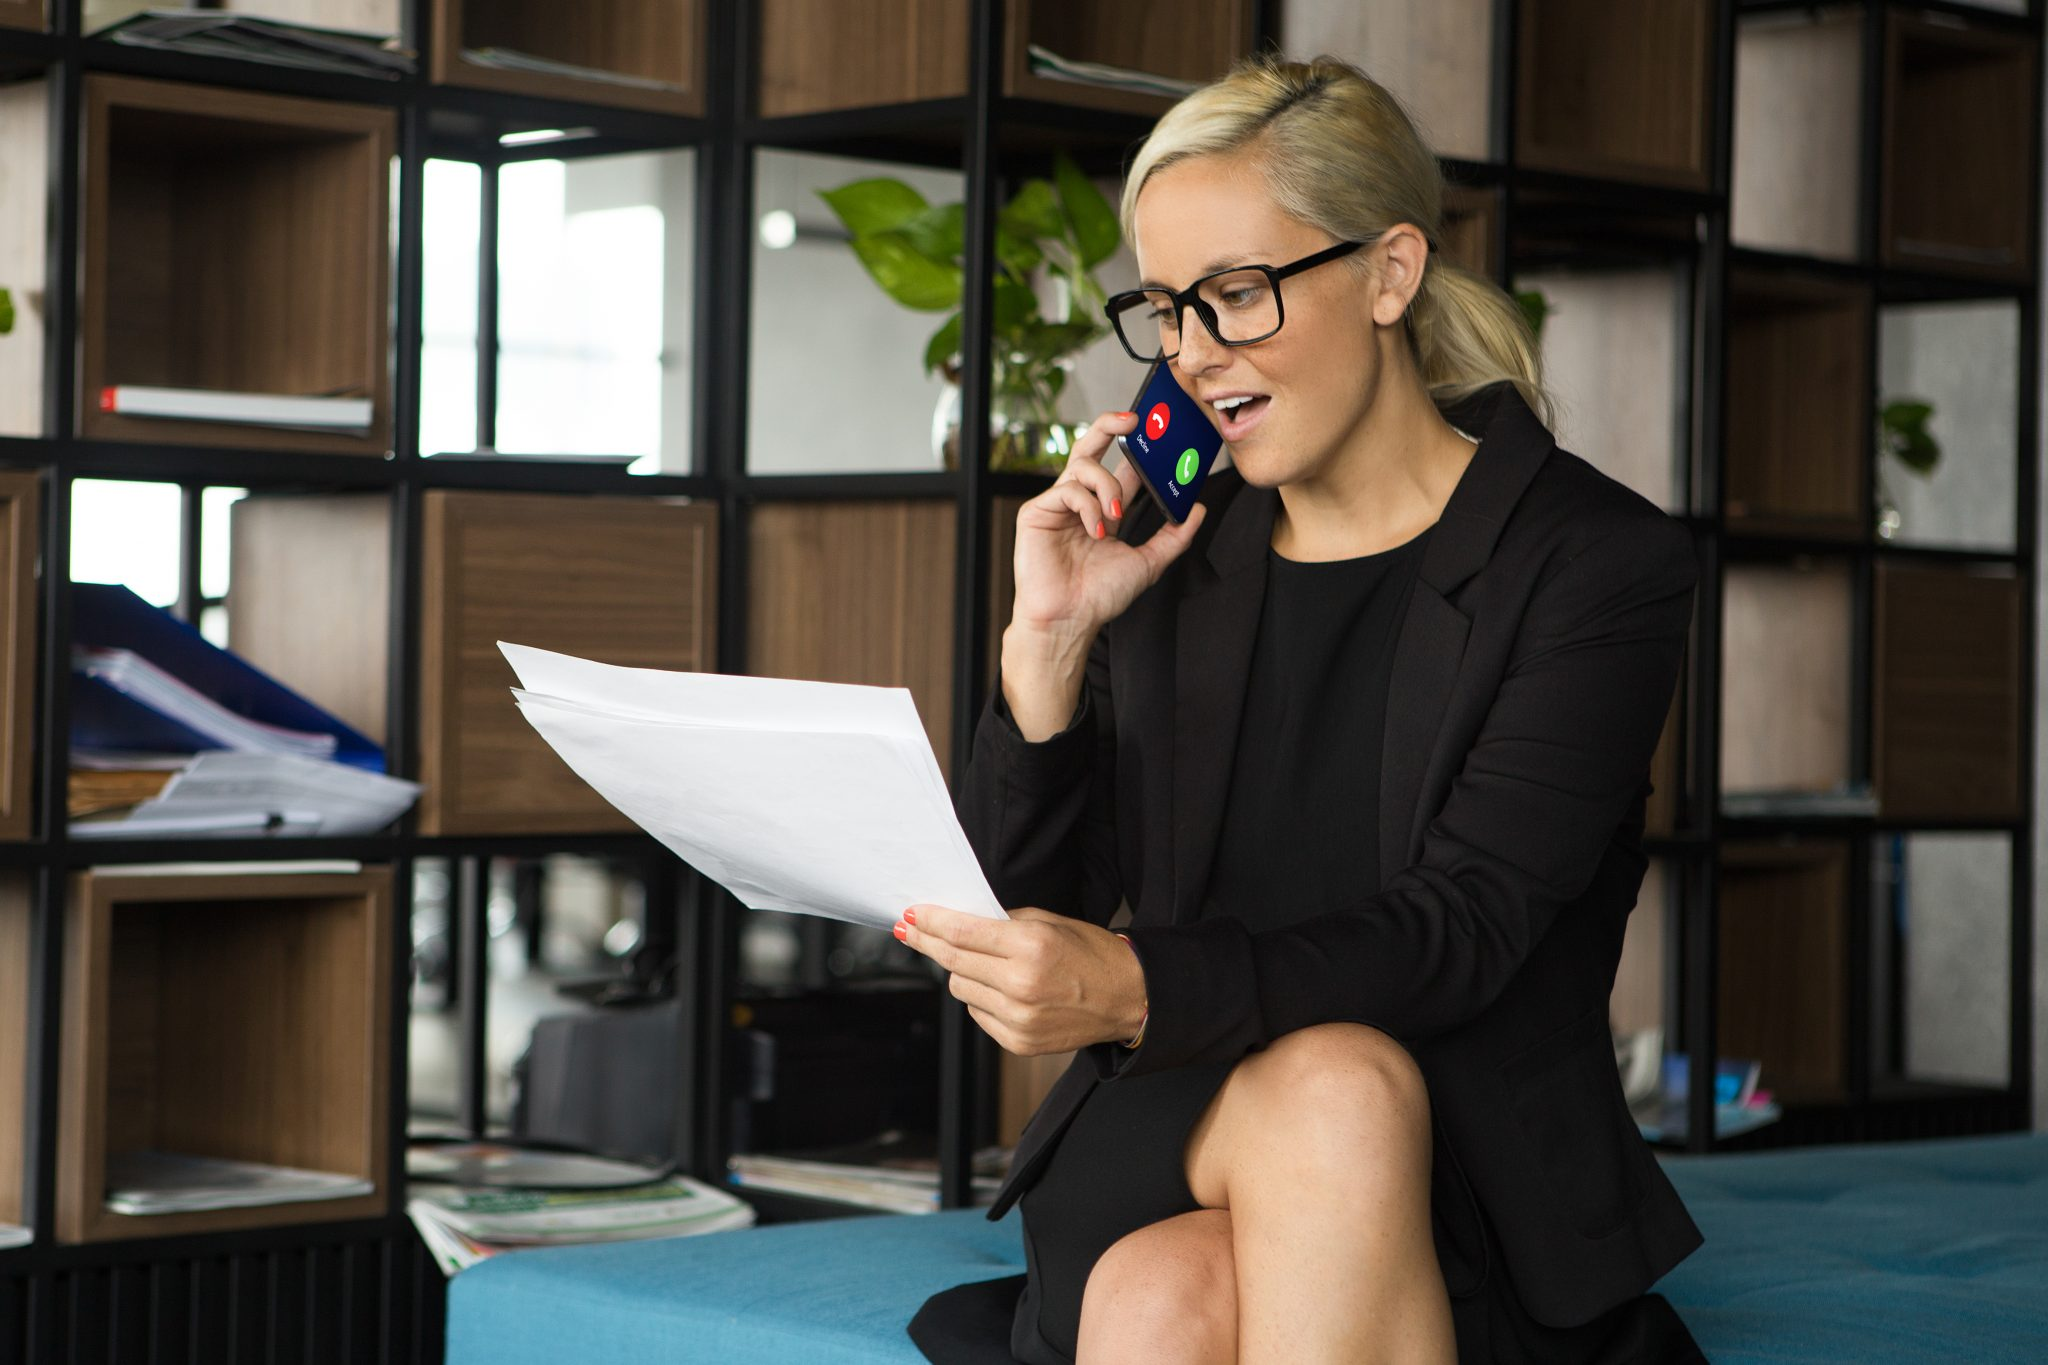 woman on phone dictating her notes